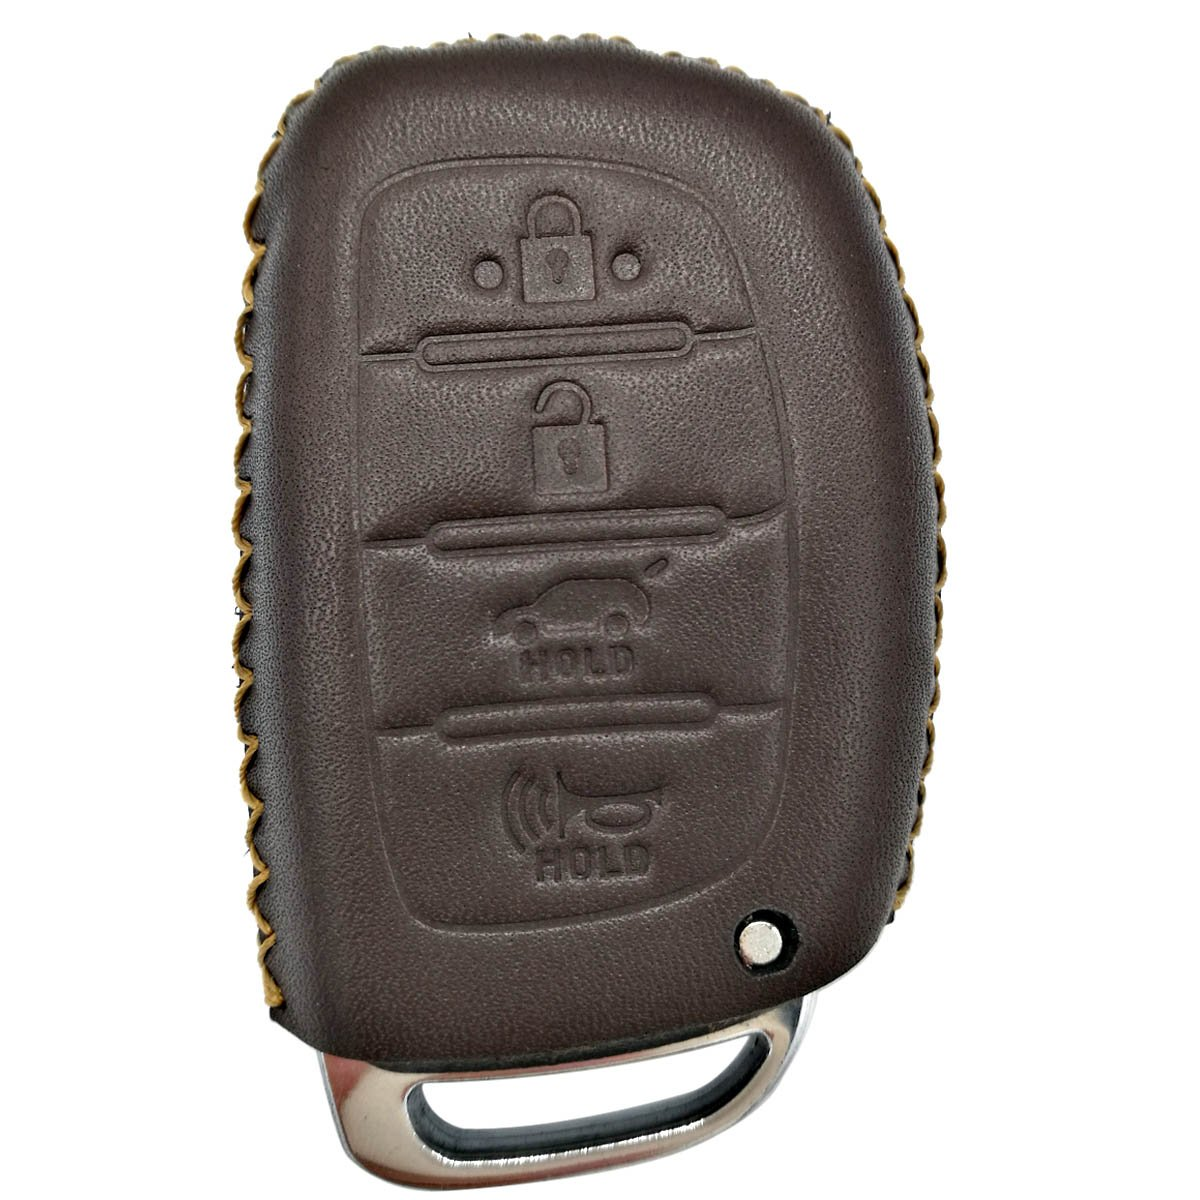 Coolbestda Genuine Leather Key Fob Remote Cover Keyless Entry Jacket Holder for 2018 2017 2016 Hyundai Tucson Elantra Sonata 4Buttons NOT FIT Flip//Pop Out//Folding key Brown